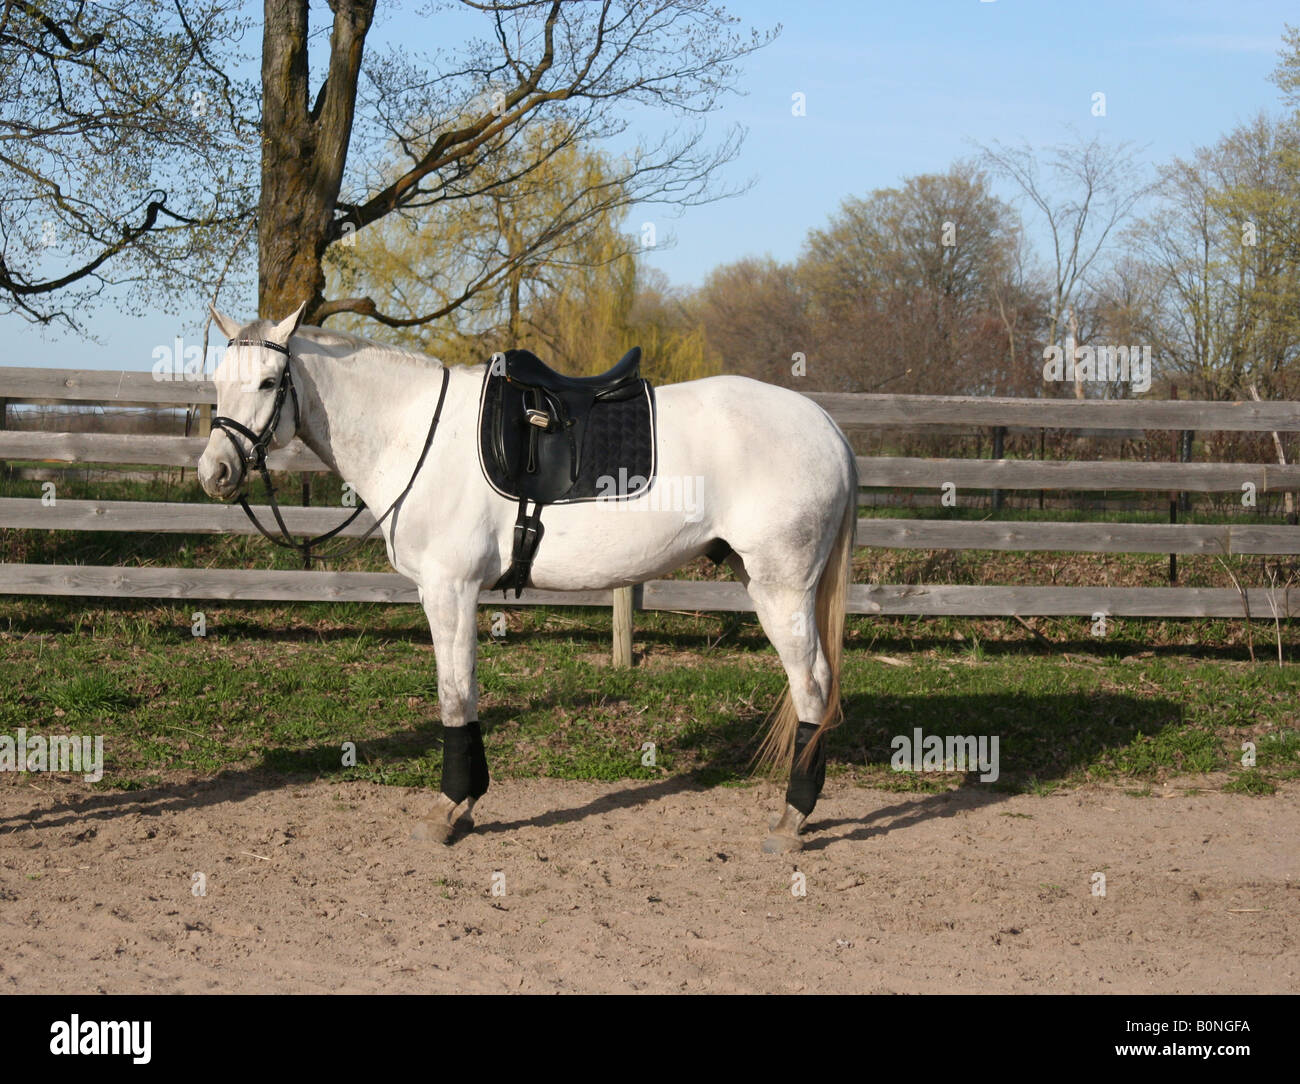 White Horse With Black Saddle Standing In Front Of Fence In A Field Stock Photo Alamy